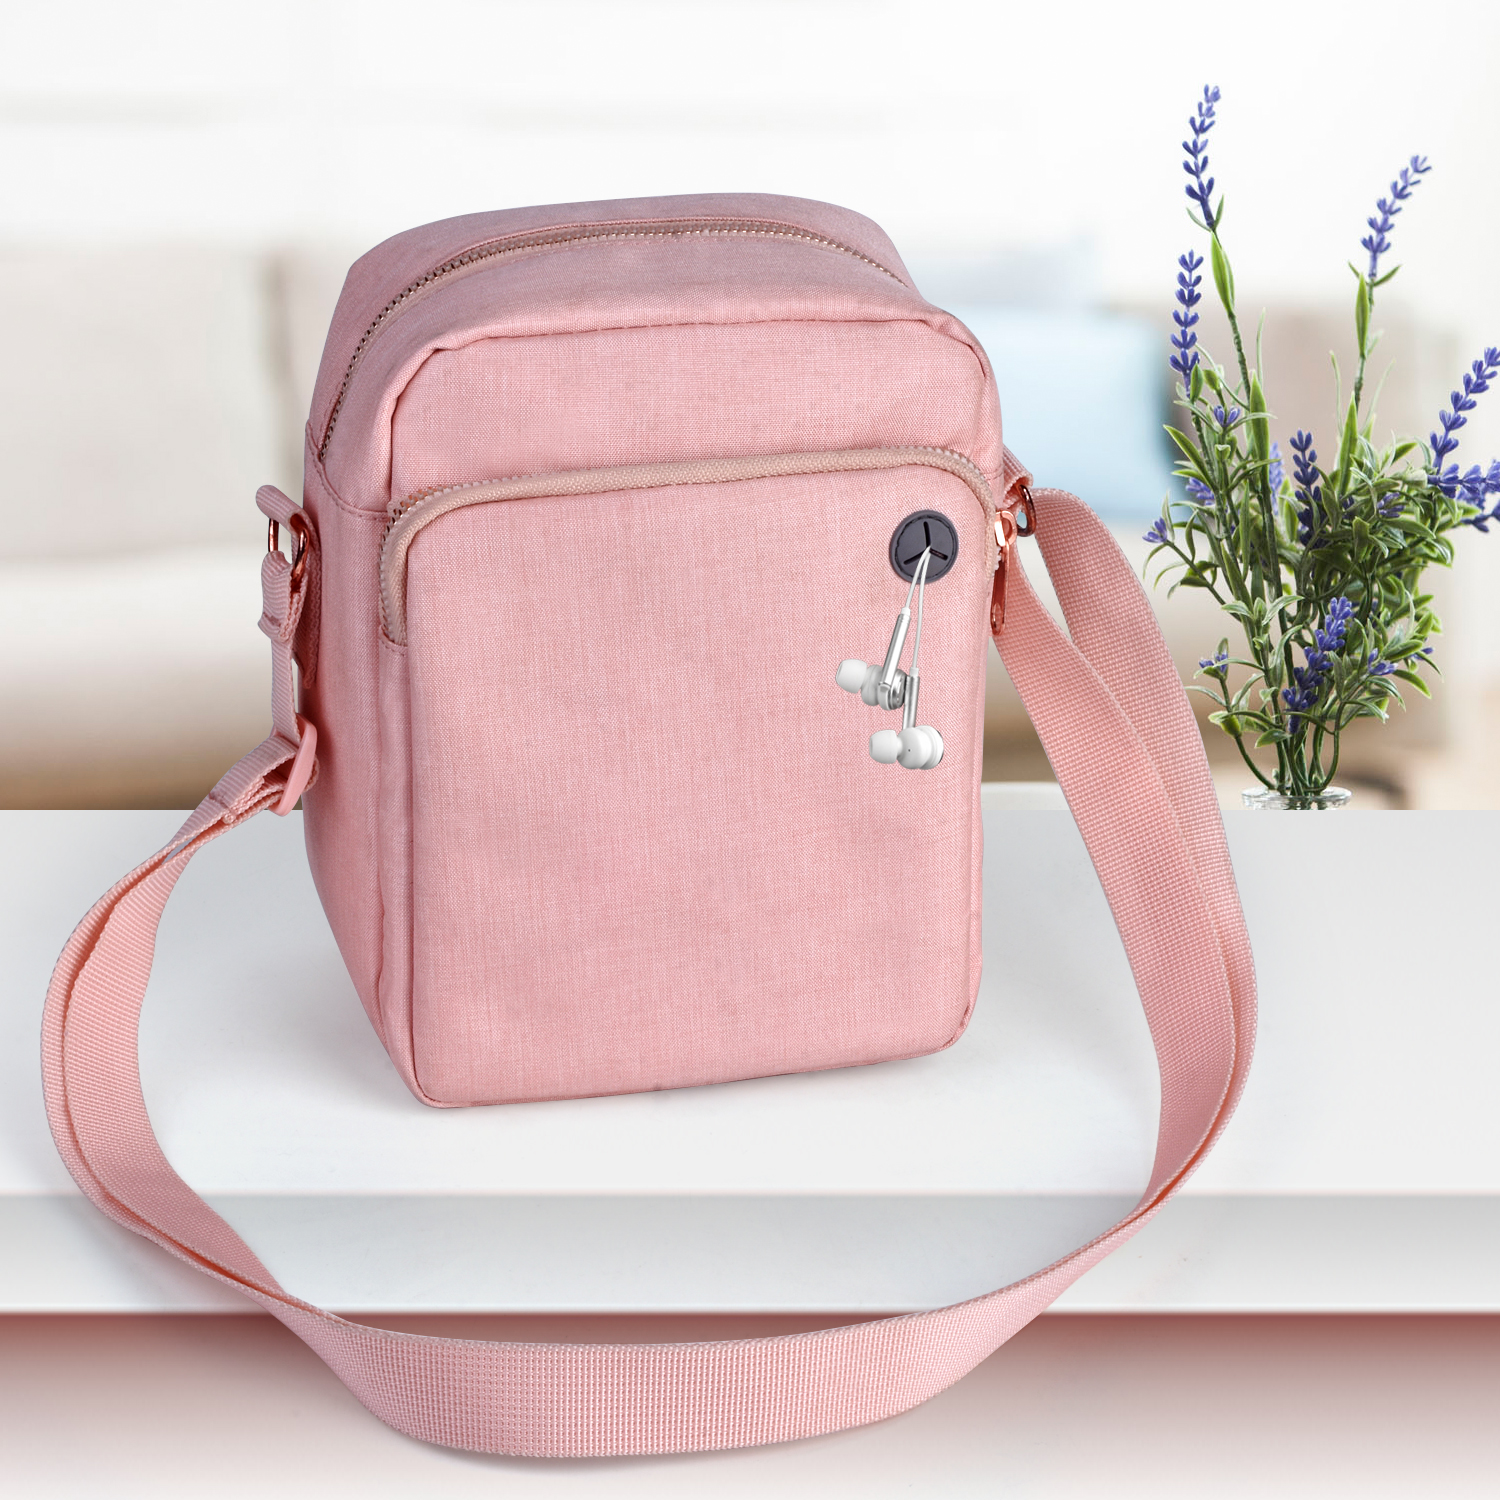 Sports Shoulder Bags For Women Men Gym Crossbody Bag With Headphone Plug  For Running Walking Climbing Sports Wallet Phone Bags